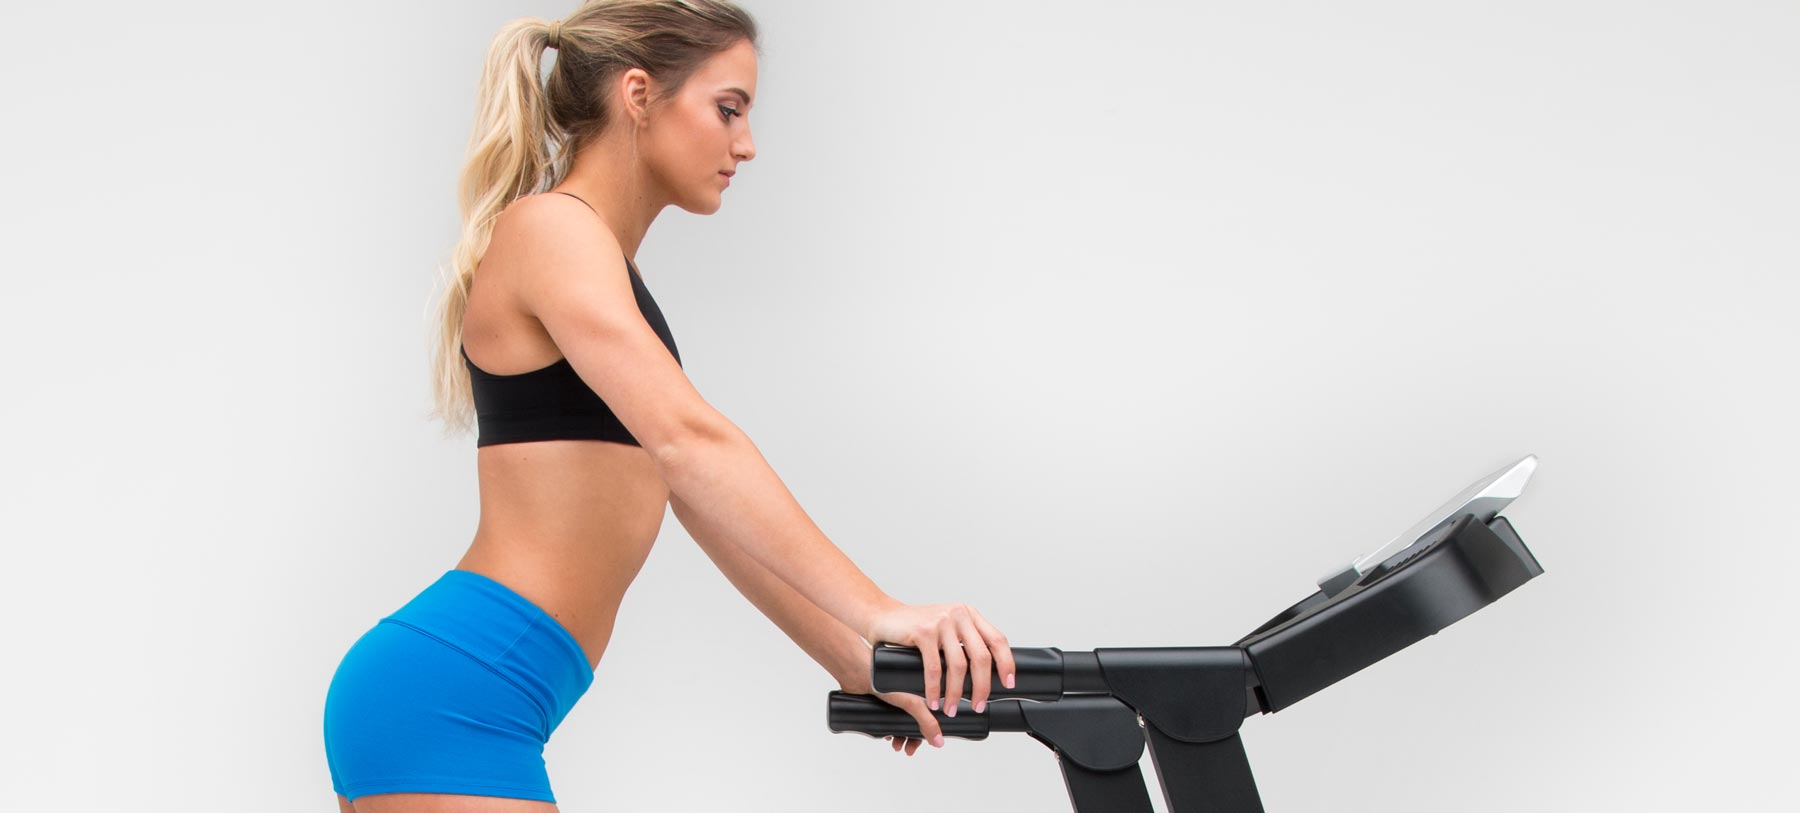 Is it OK to hold the front handlebars while exercising on my treadmill